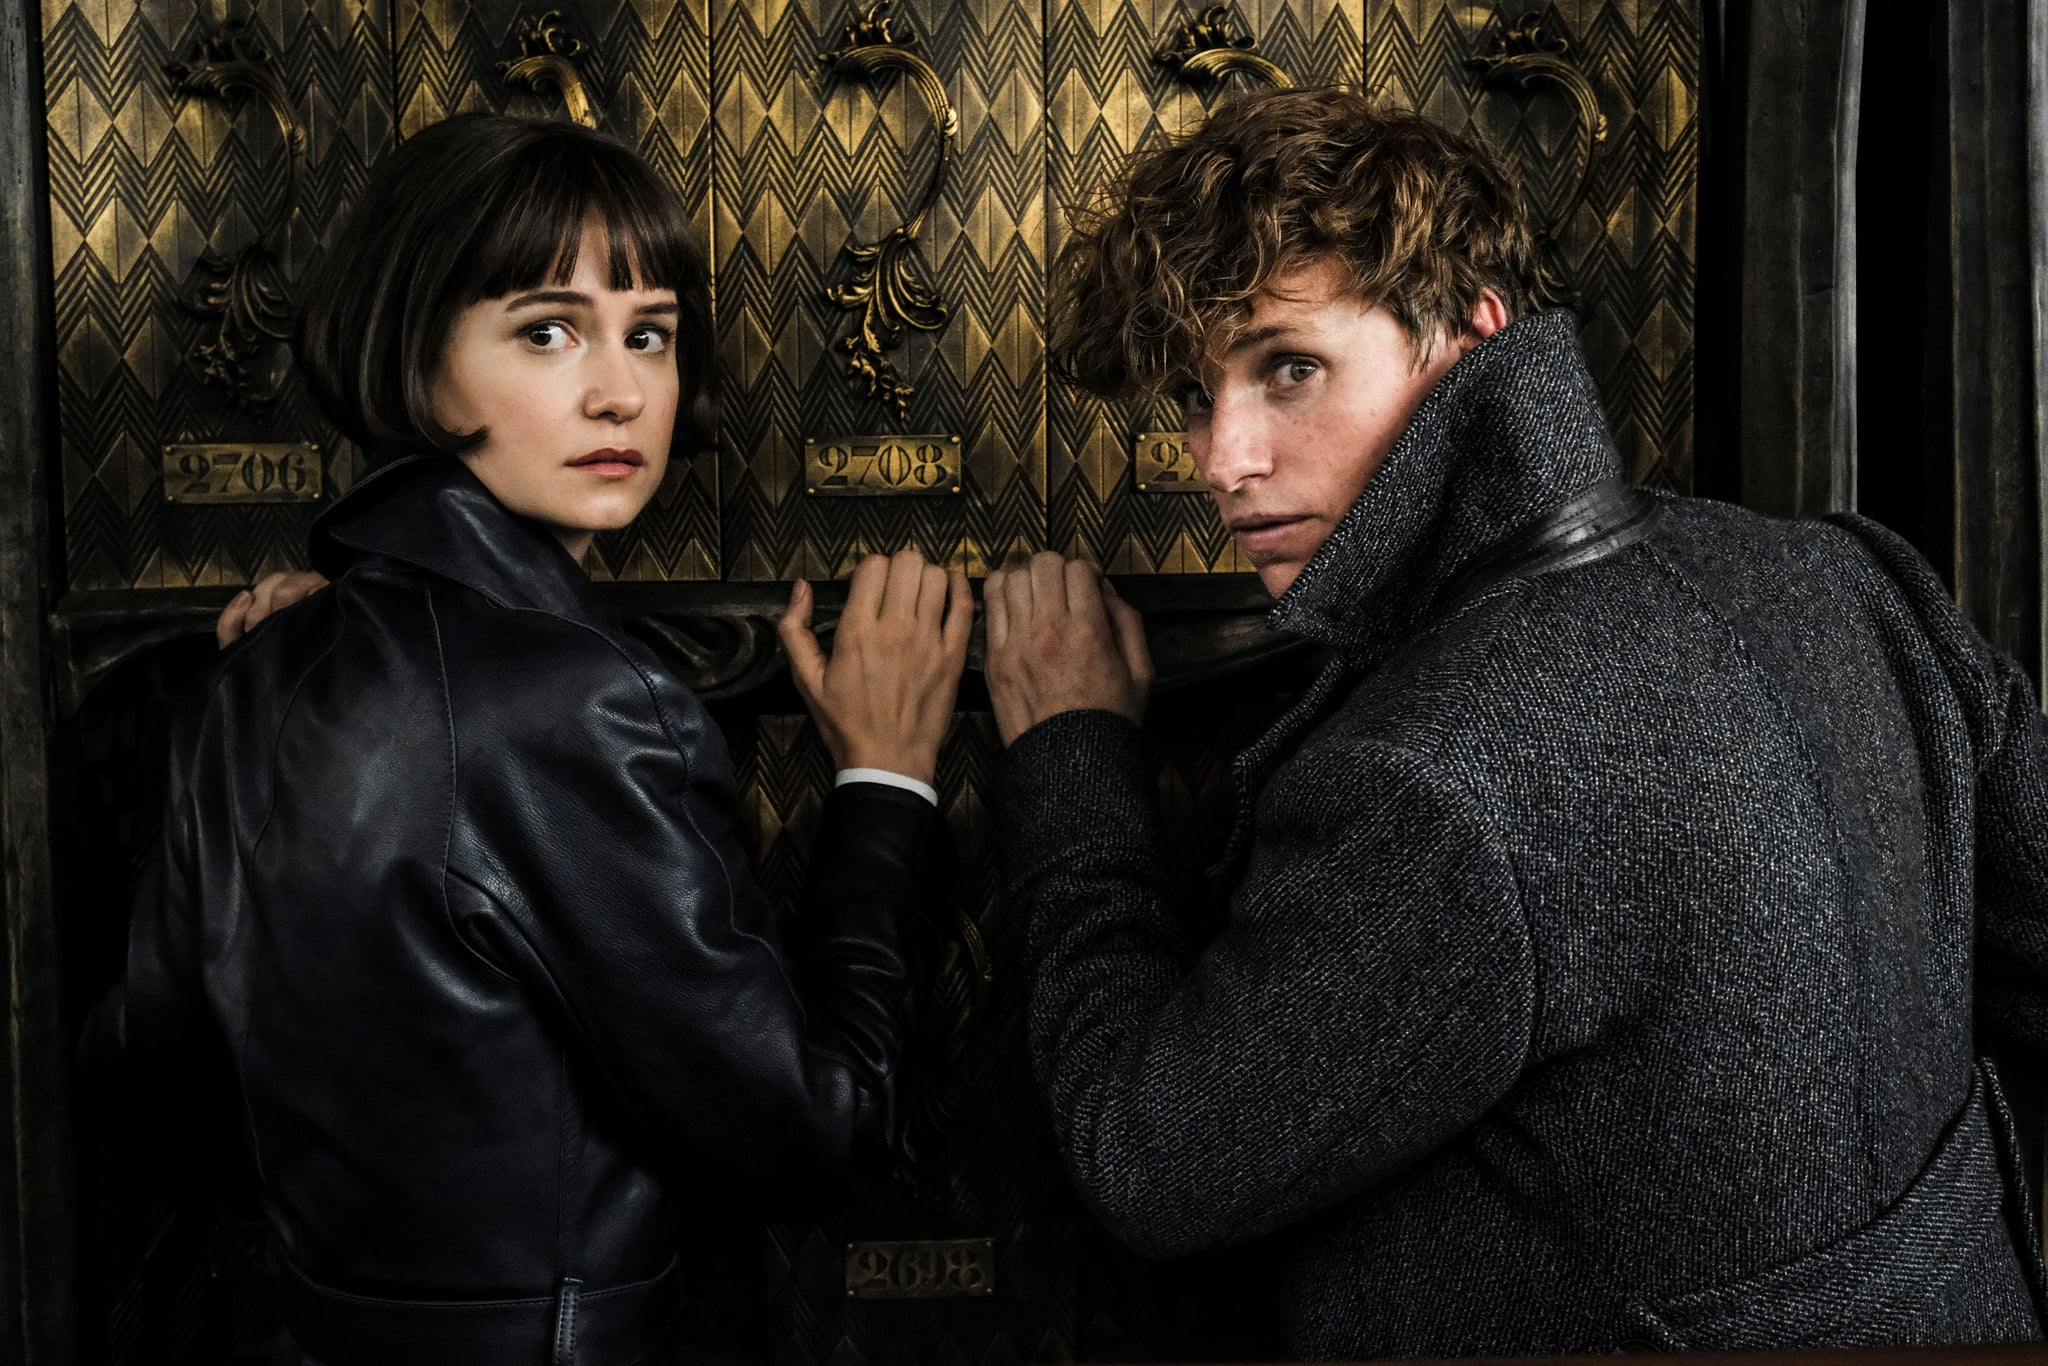 FANTASTIC BEASTS: THE CRIMES OF GRINDELWALD, from left: Katherine Waterston, Eddie Redmayne, 2018. ph: Jaap Buitendijk / 2018 Warner Bros. Ent. All Rights Reserved.Wizarding WorldTM Publishing Rights  J.K. Rowling WIZARDING WORLD and all related characters and elements are trademarks of and  Warner Bros. Entertainment Inc. /Courtesy Everett Collection